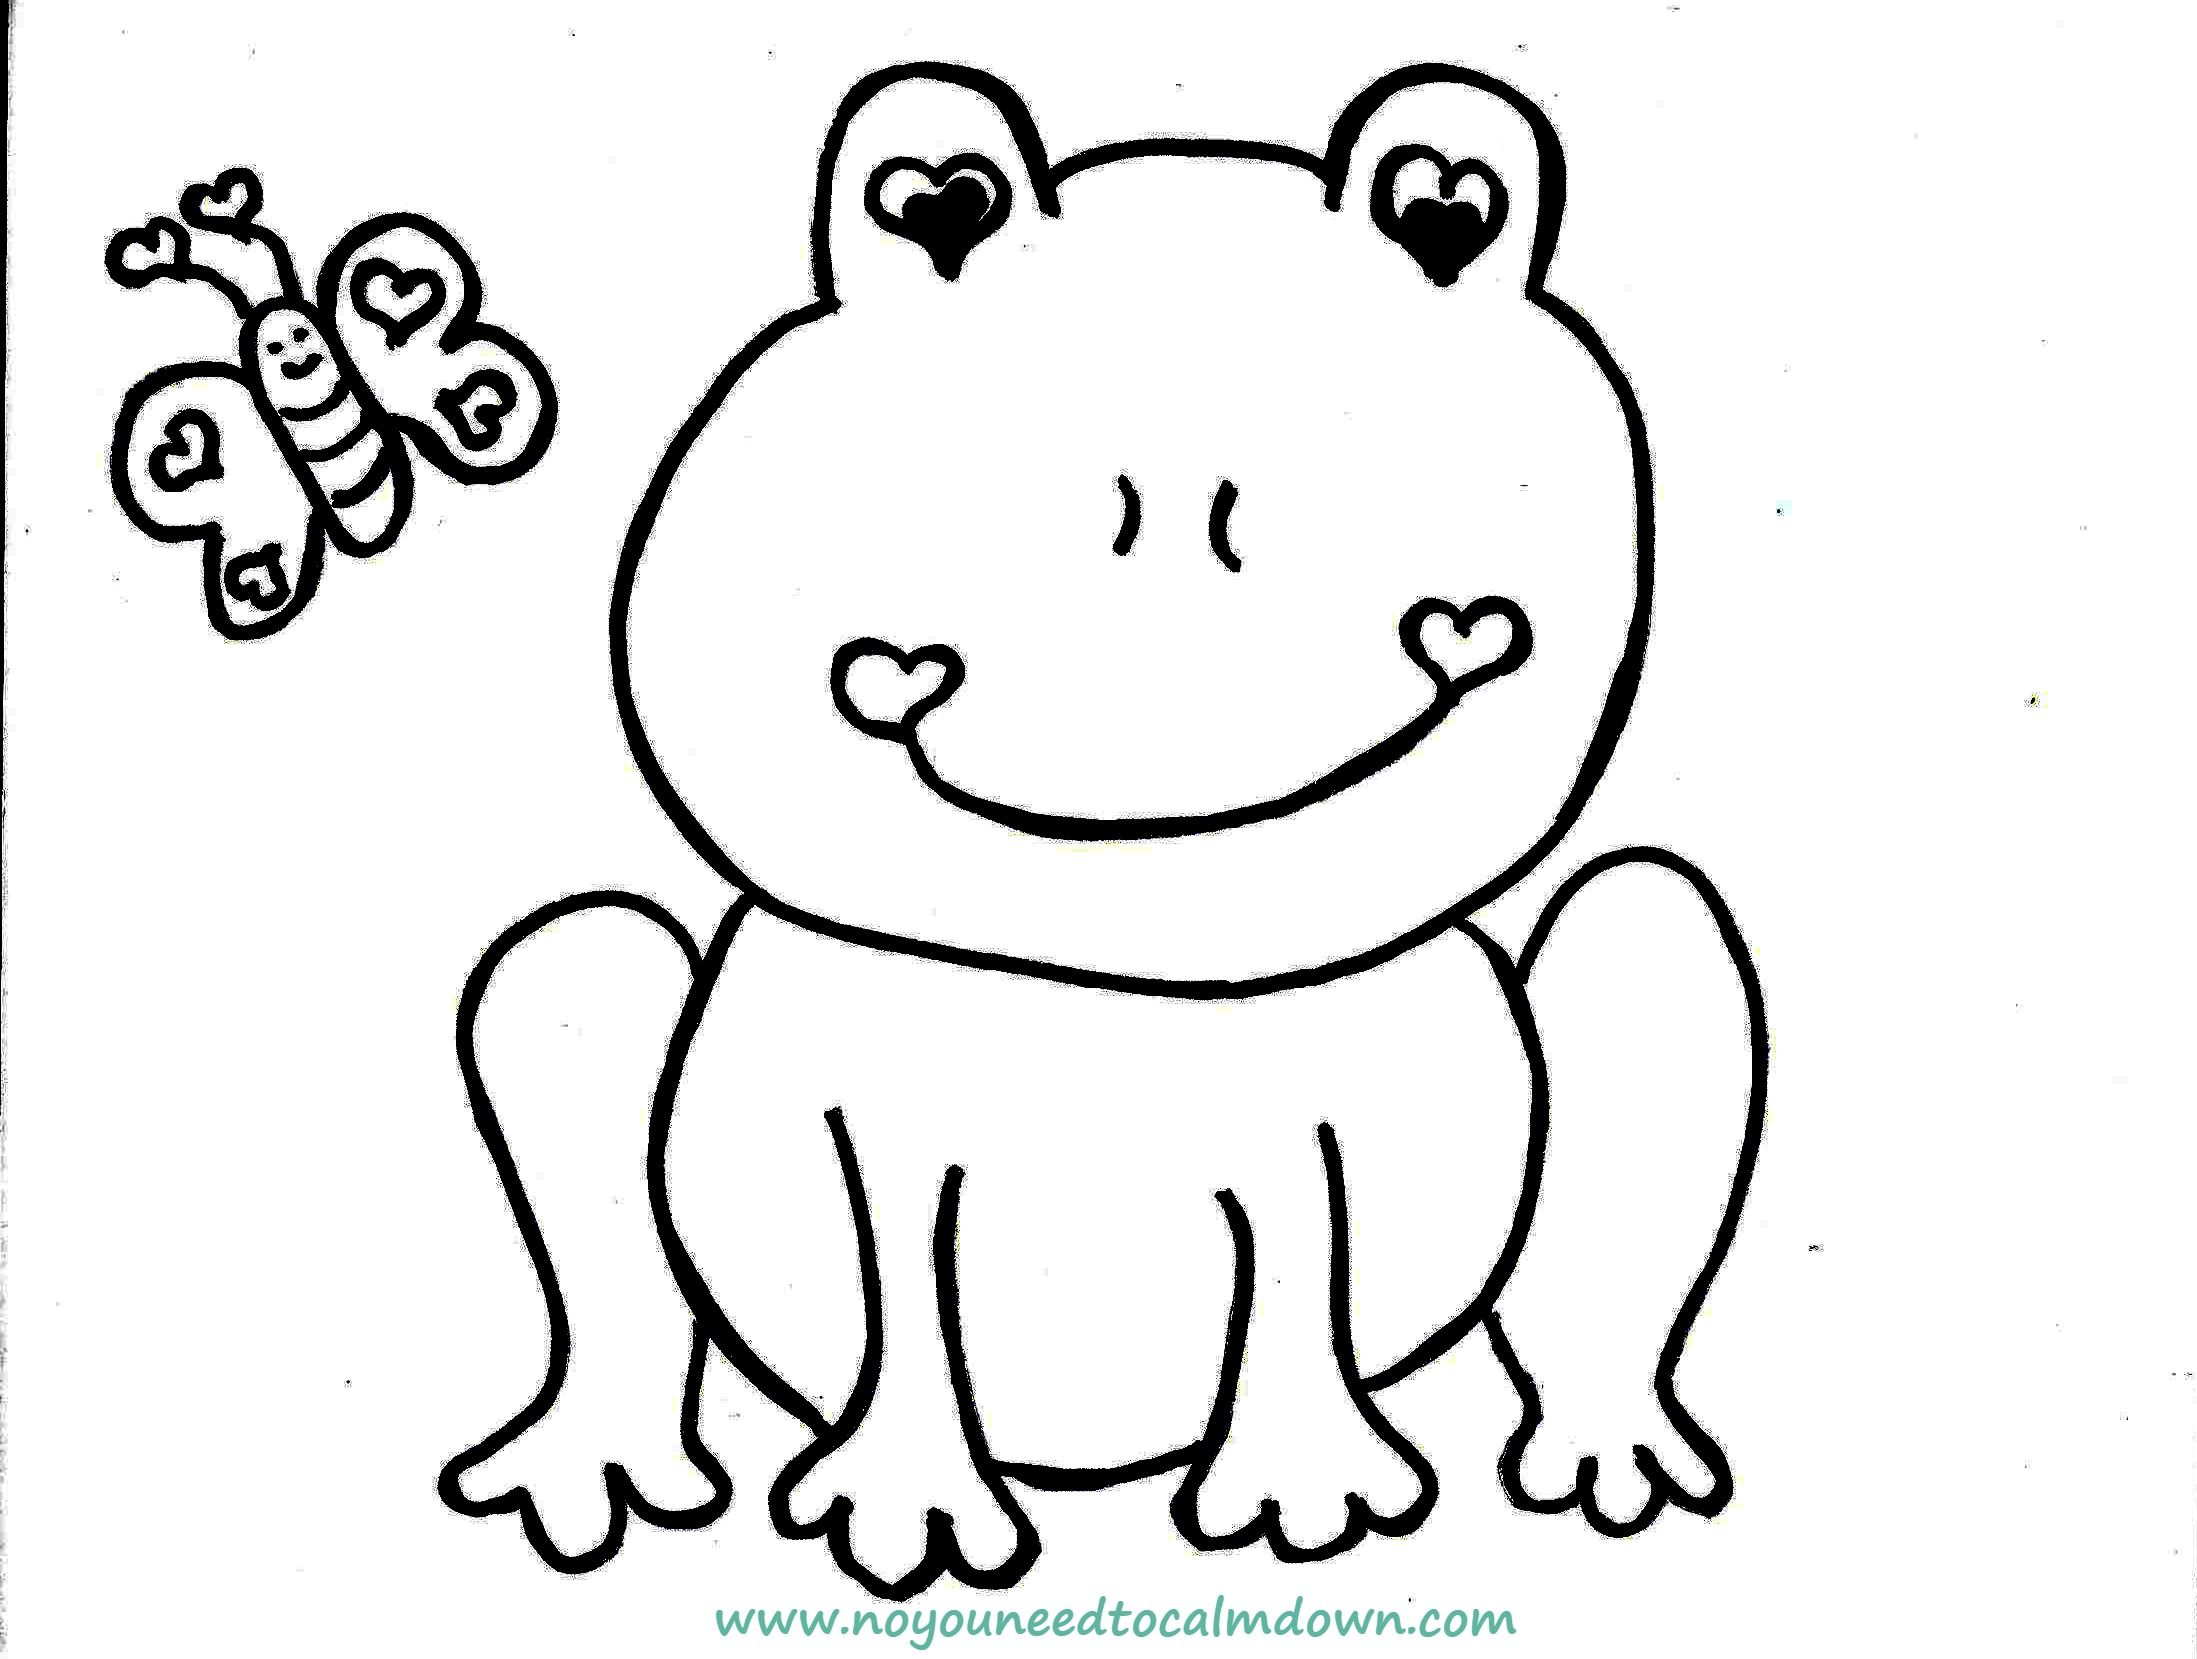 Cute Frog Valentine's Day Coloring Page Free Printable